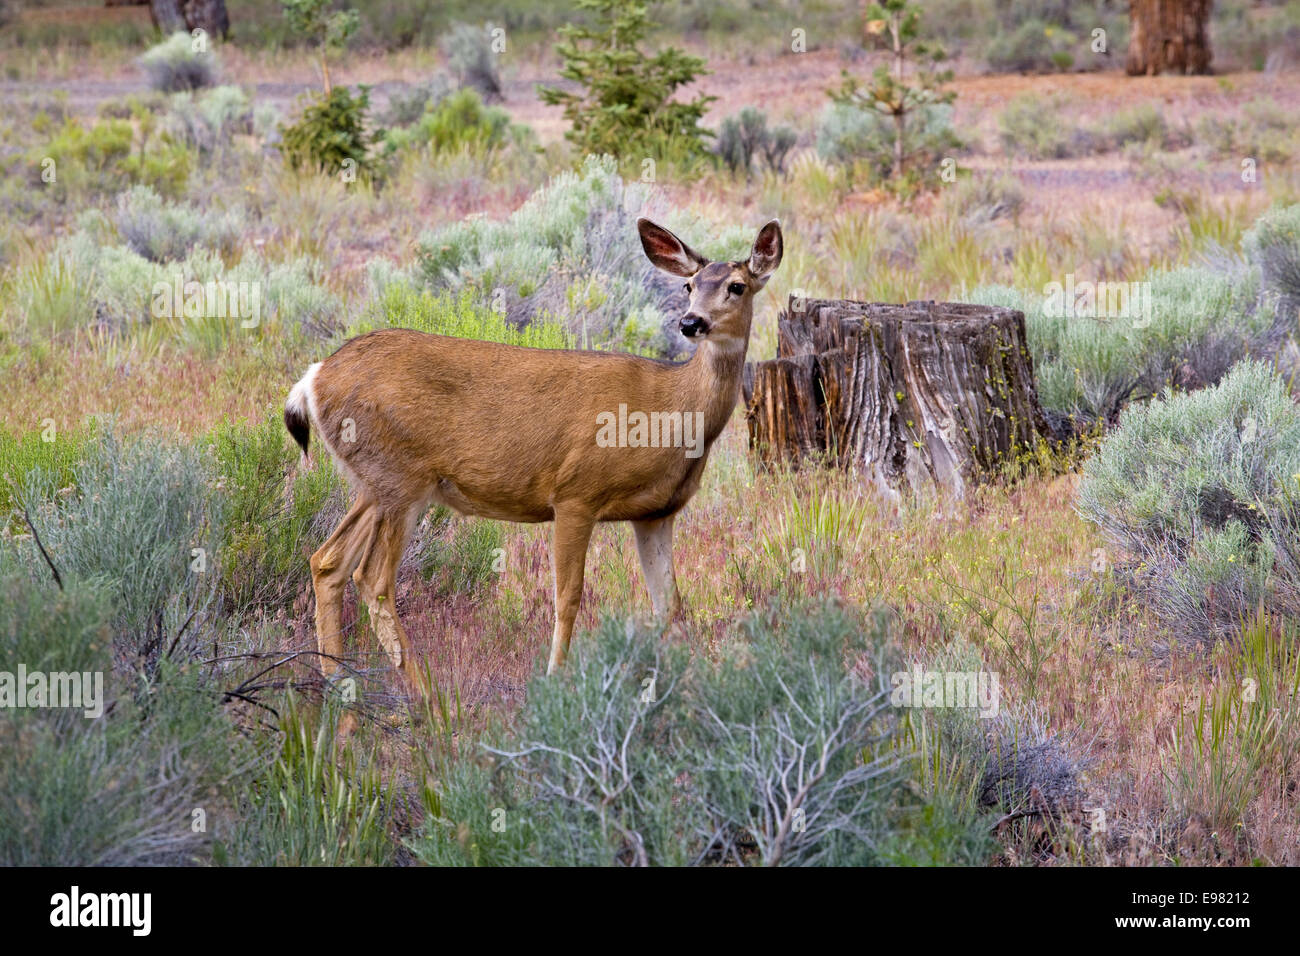 A young mule deer doe in a residential area near Bend, Oregon - Stock Image